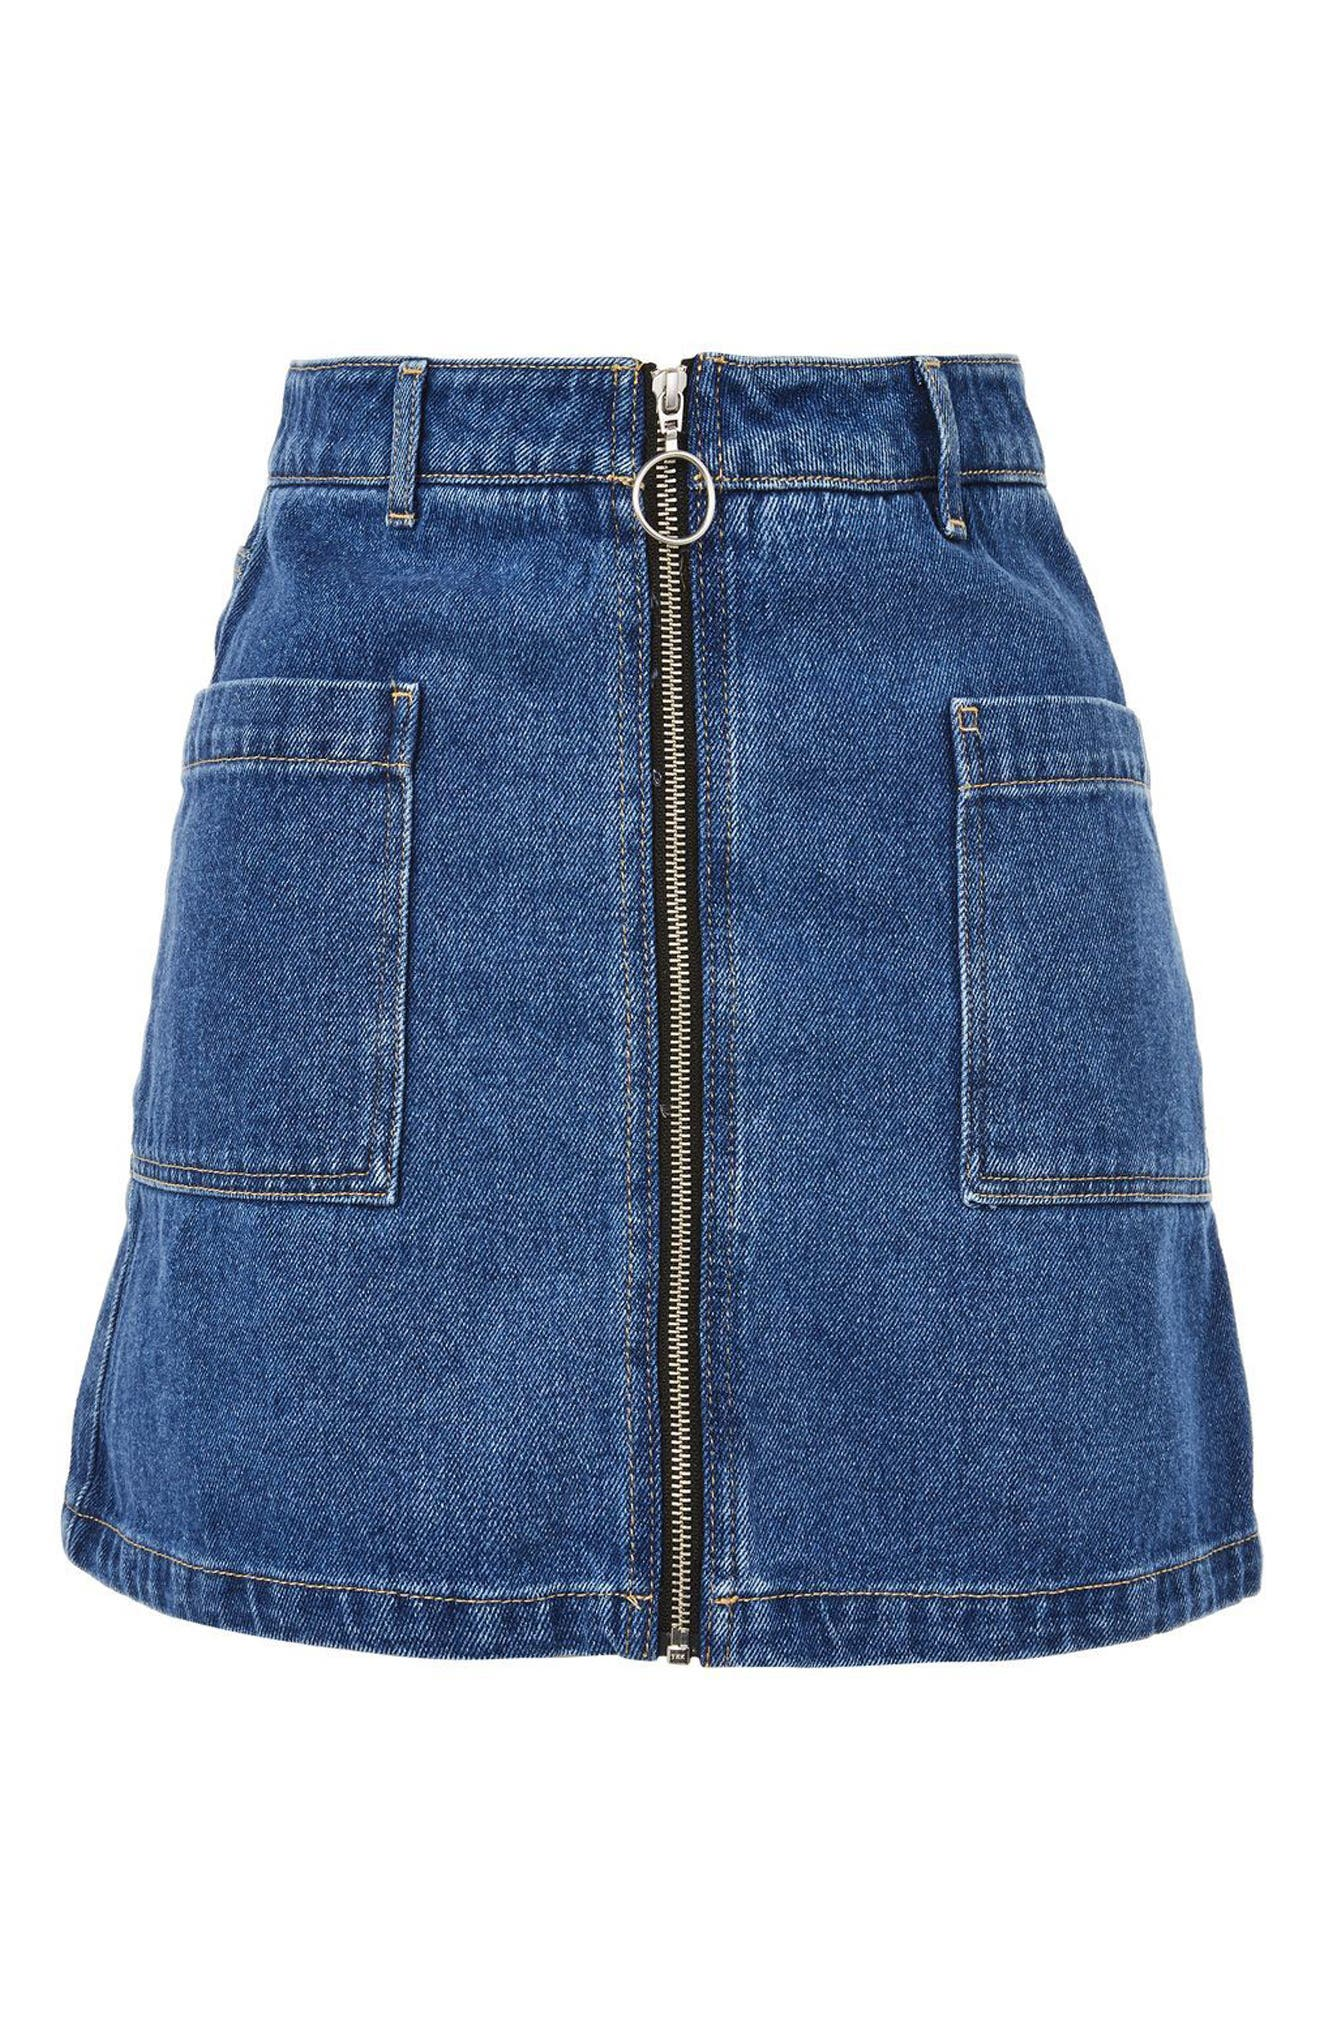 Patch Pocket A-Line Denim Miniskirt,                             Alternate thumbnail 3, color,                             Mid Denim